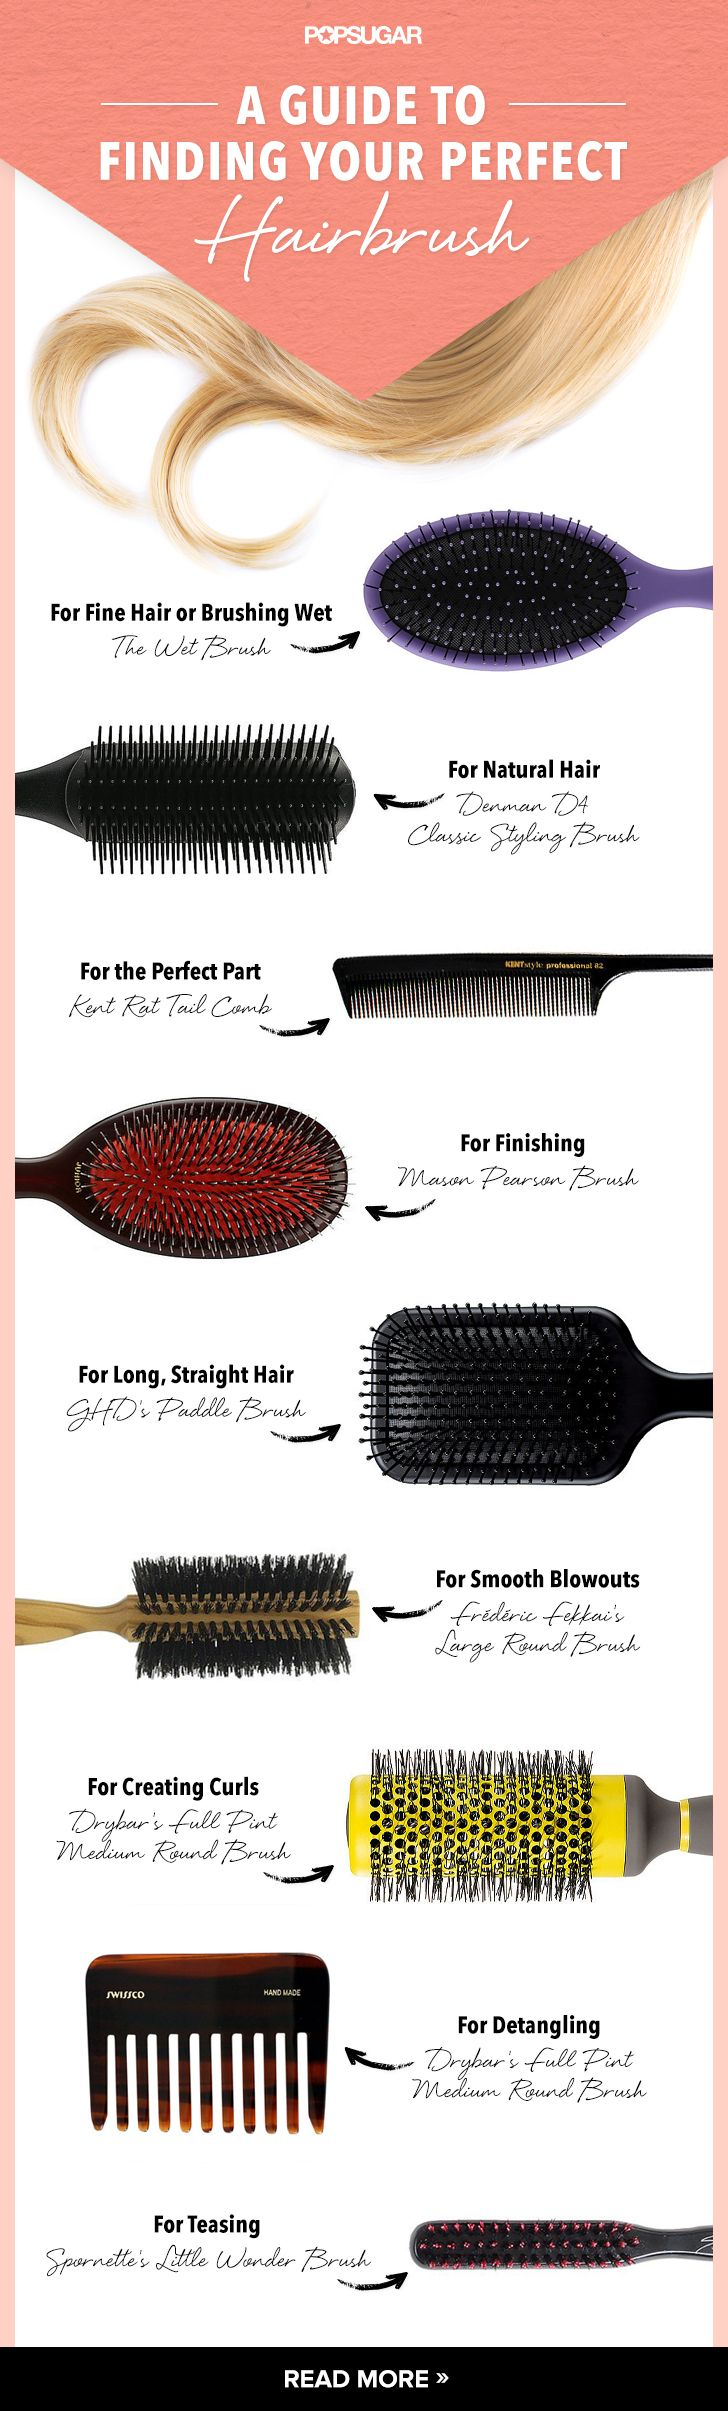 Not all hairbrushes are created equal! Here's how to find the best one for your hair type.